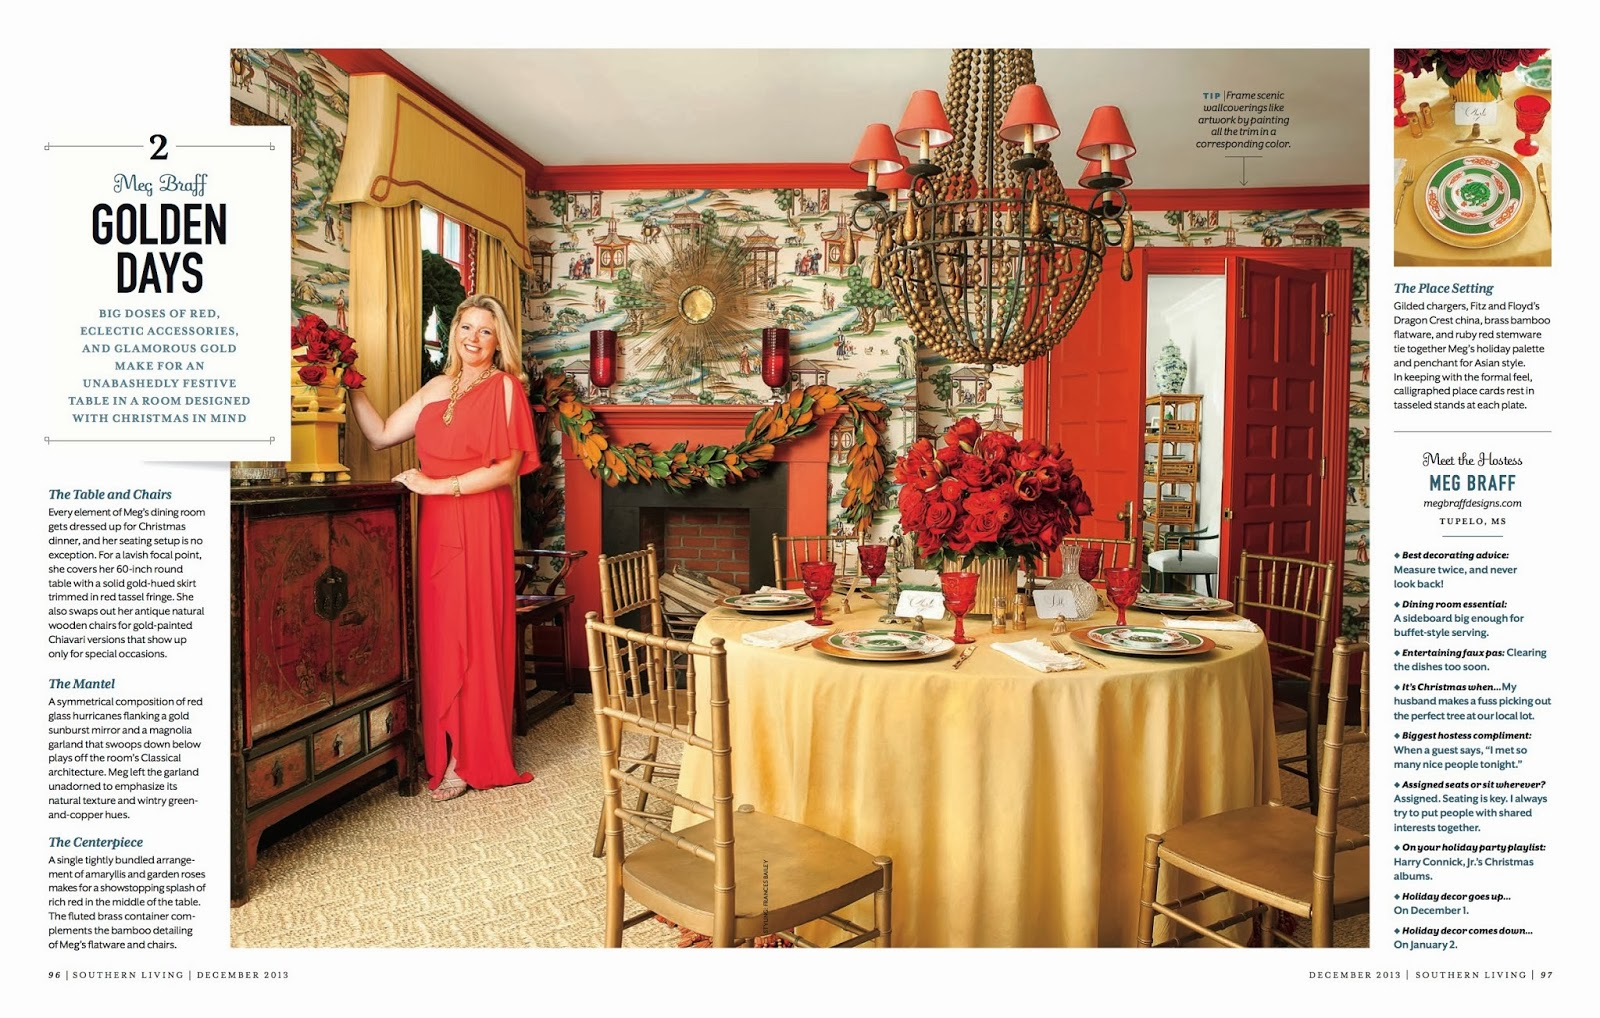 sybaritic spaces seeing red meg braff in southern living